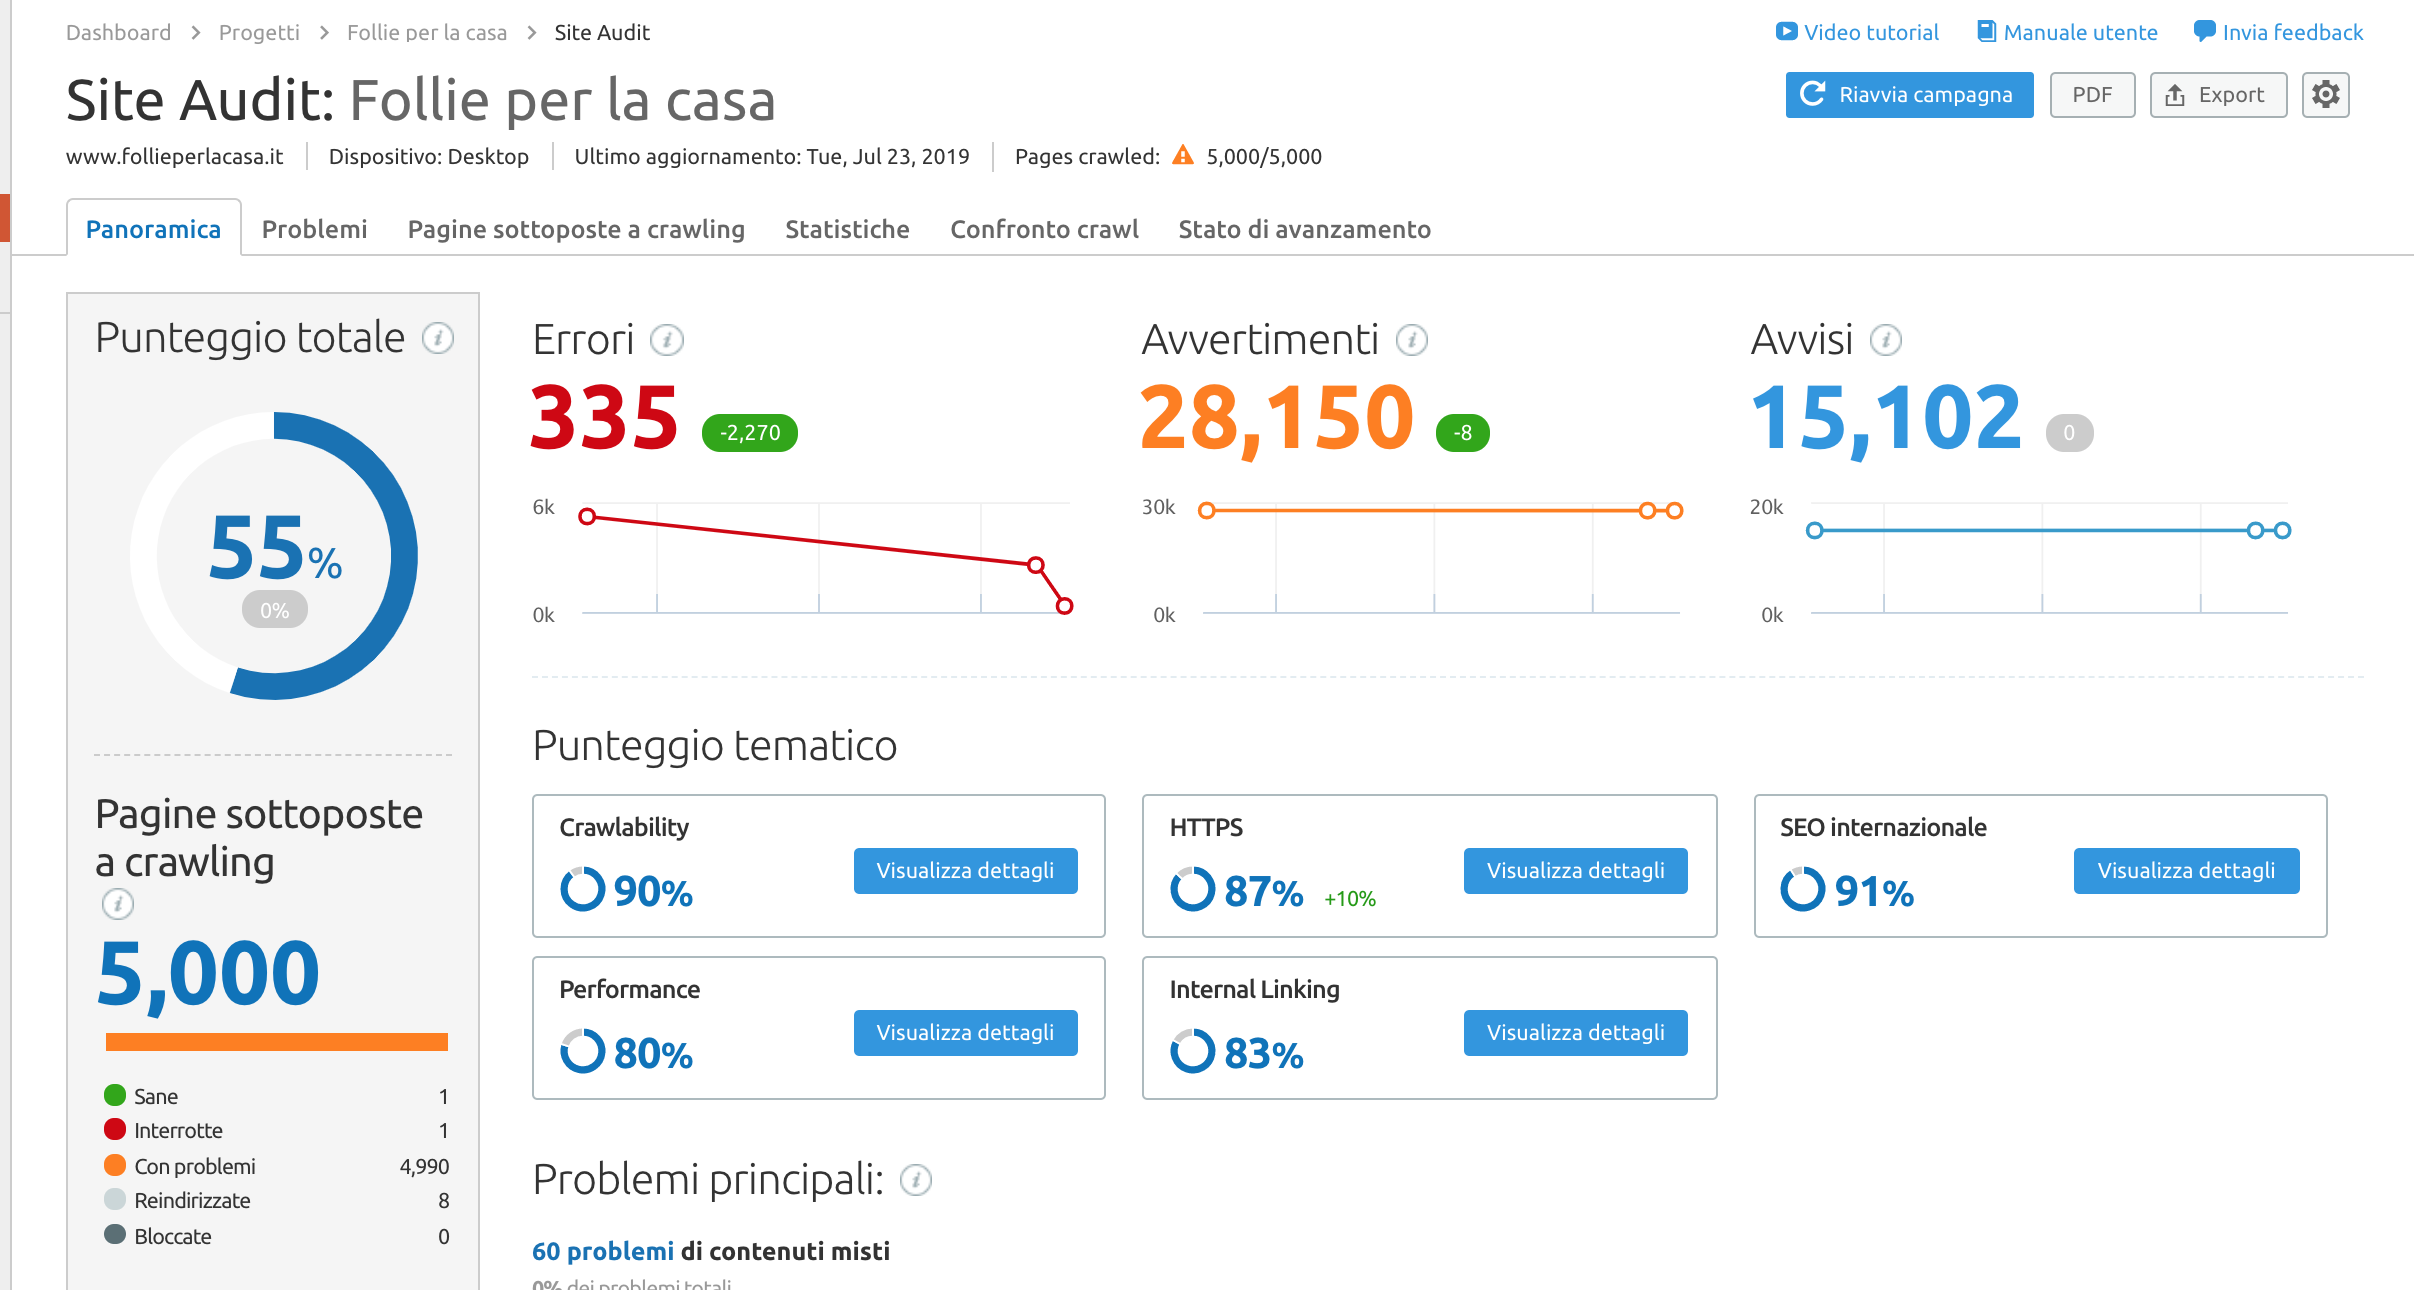 Site Audit www.foliieperlacasa.it